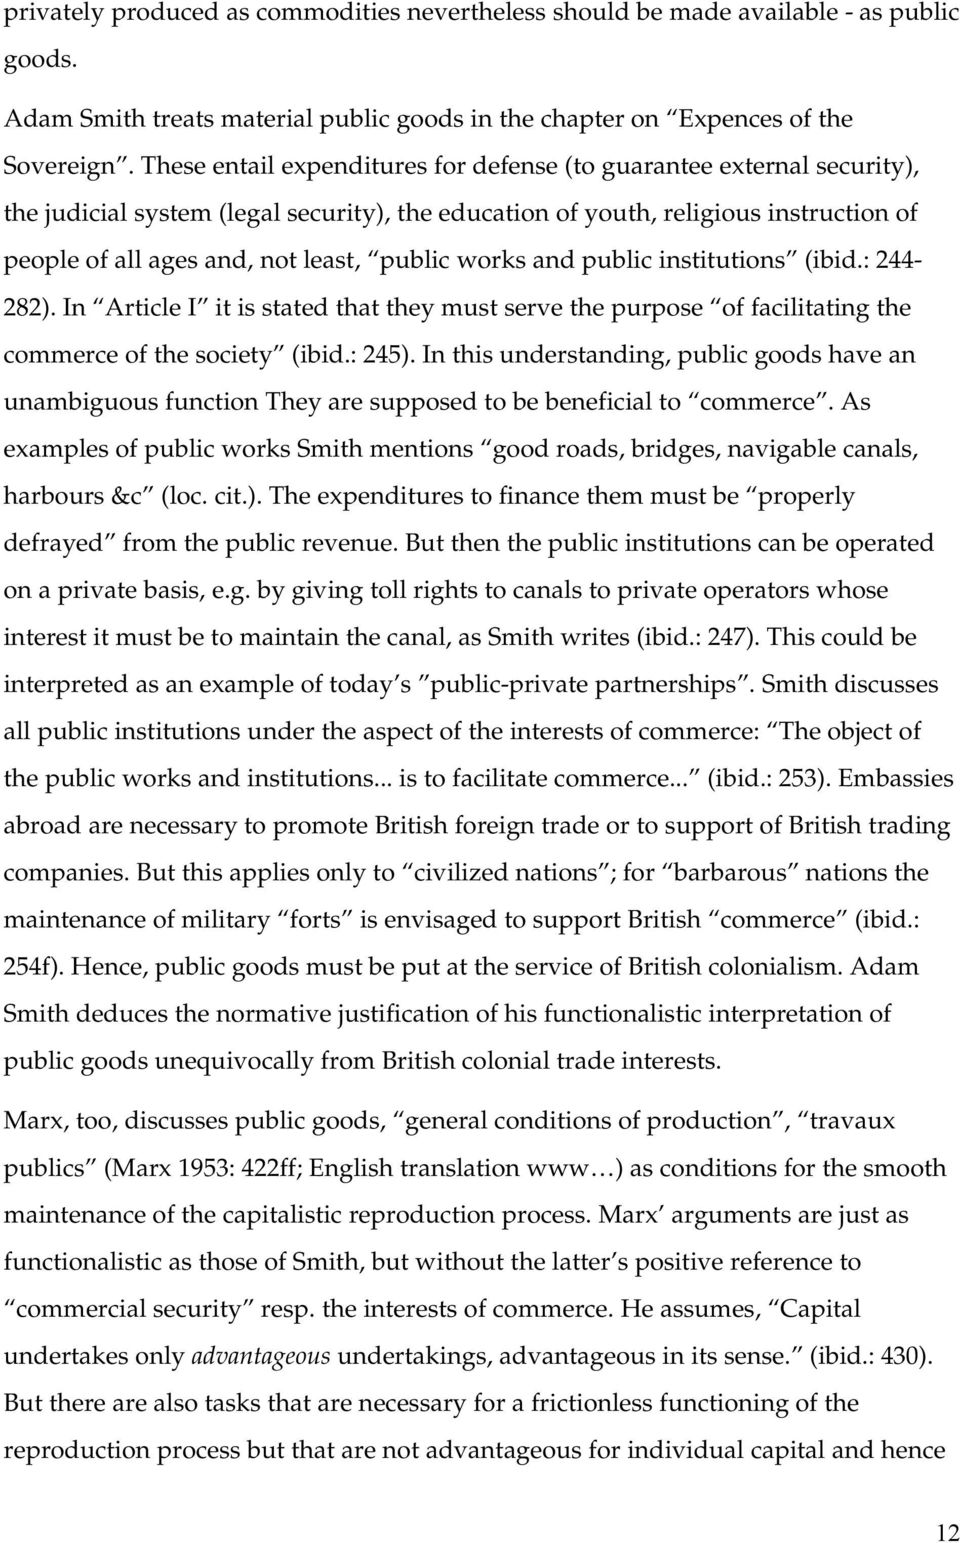 public works and public institutions (ibid.: 244-282). In Article I it is stated that they must serve the purpose of facilitating the commerce of the society (ibid.: 245).